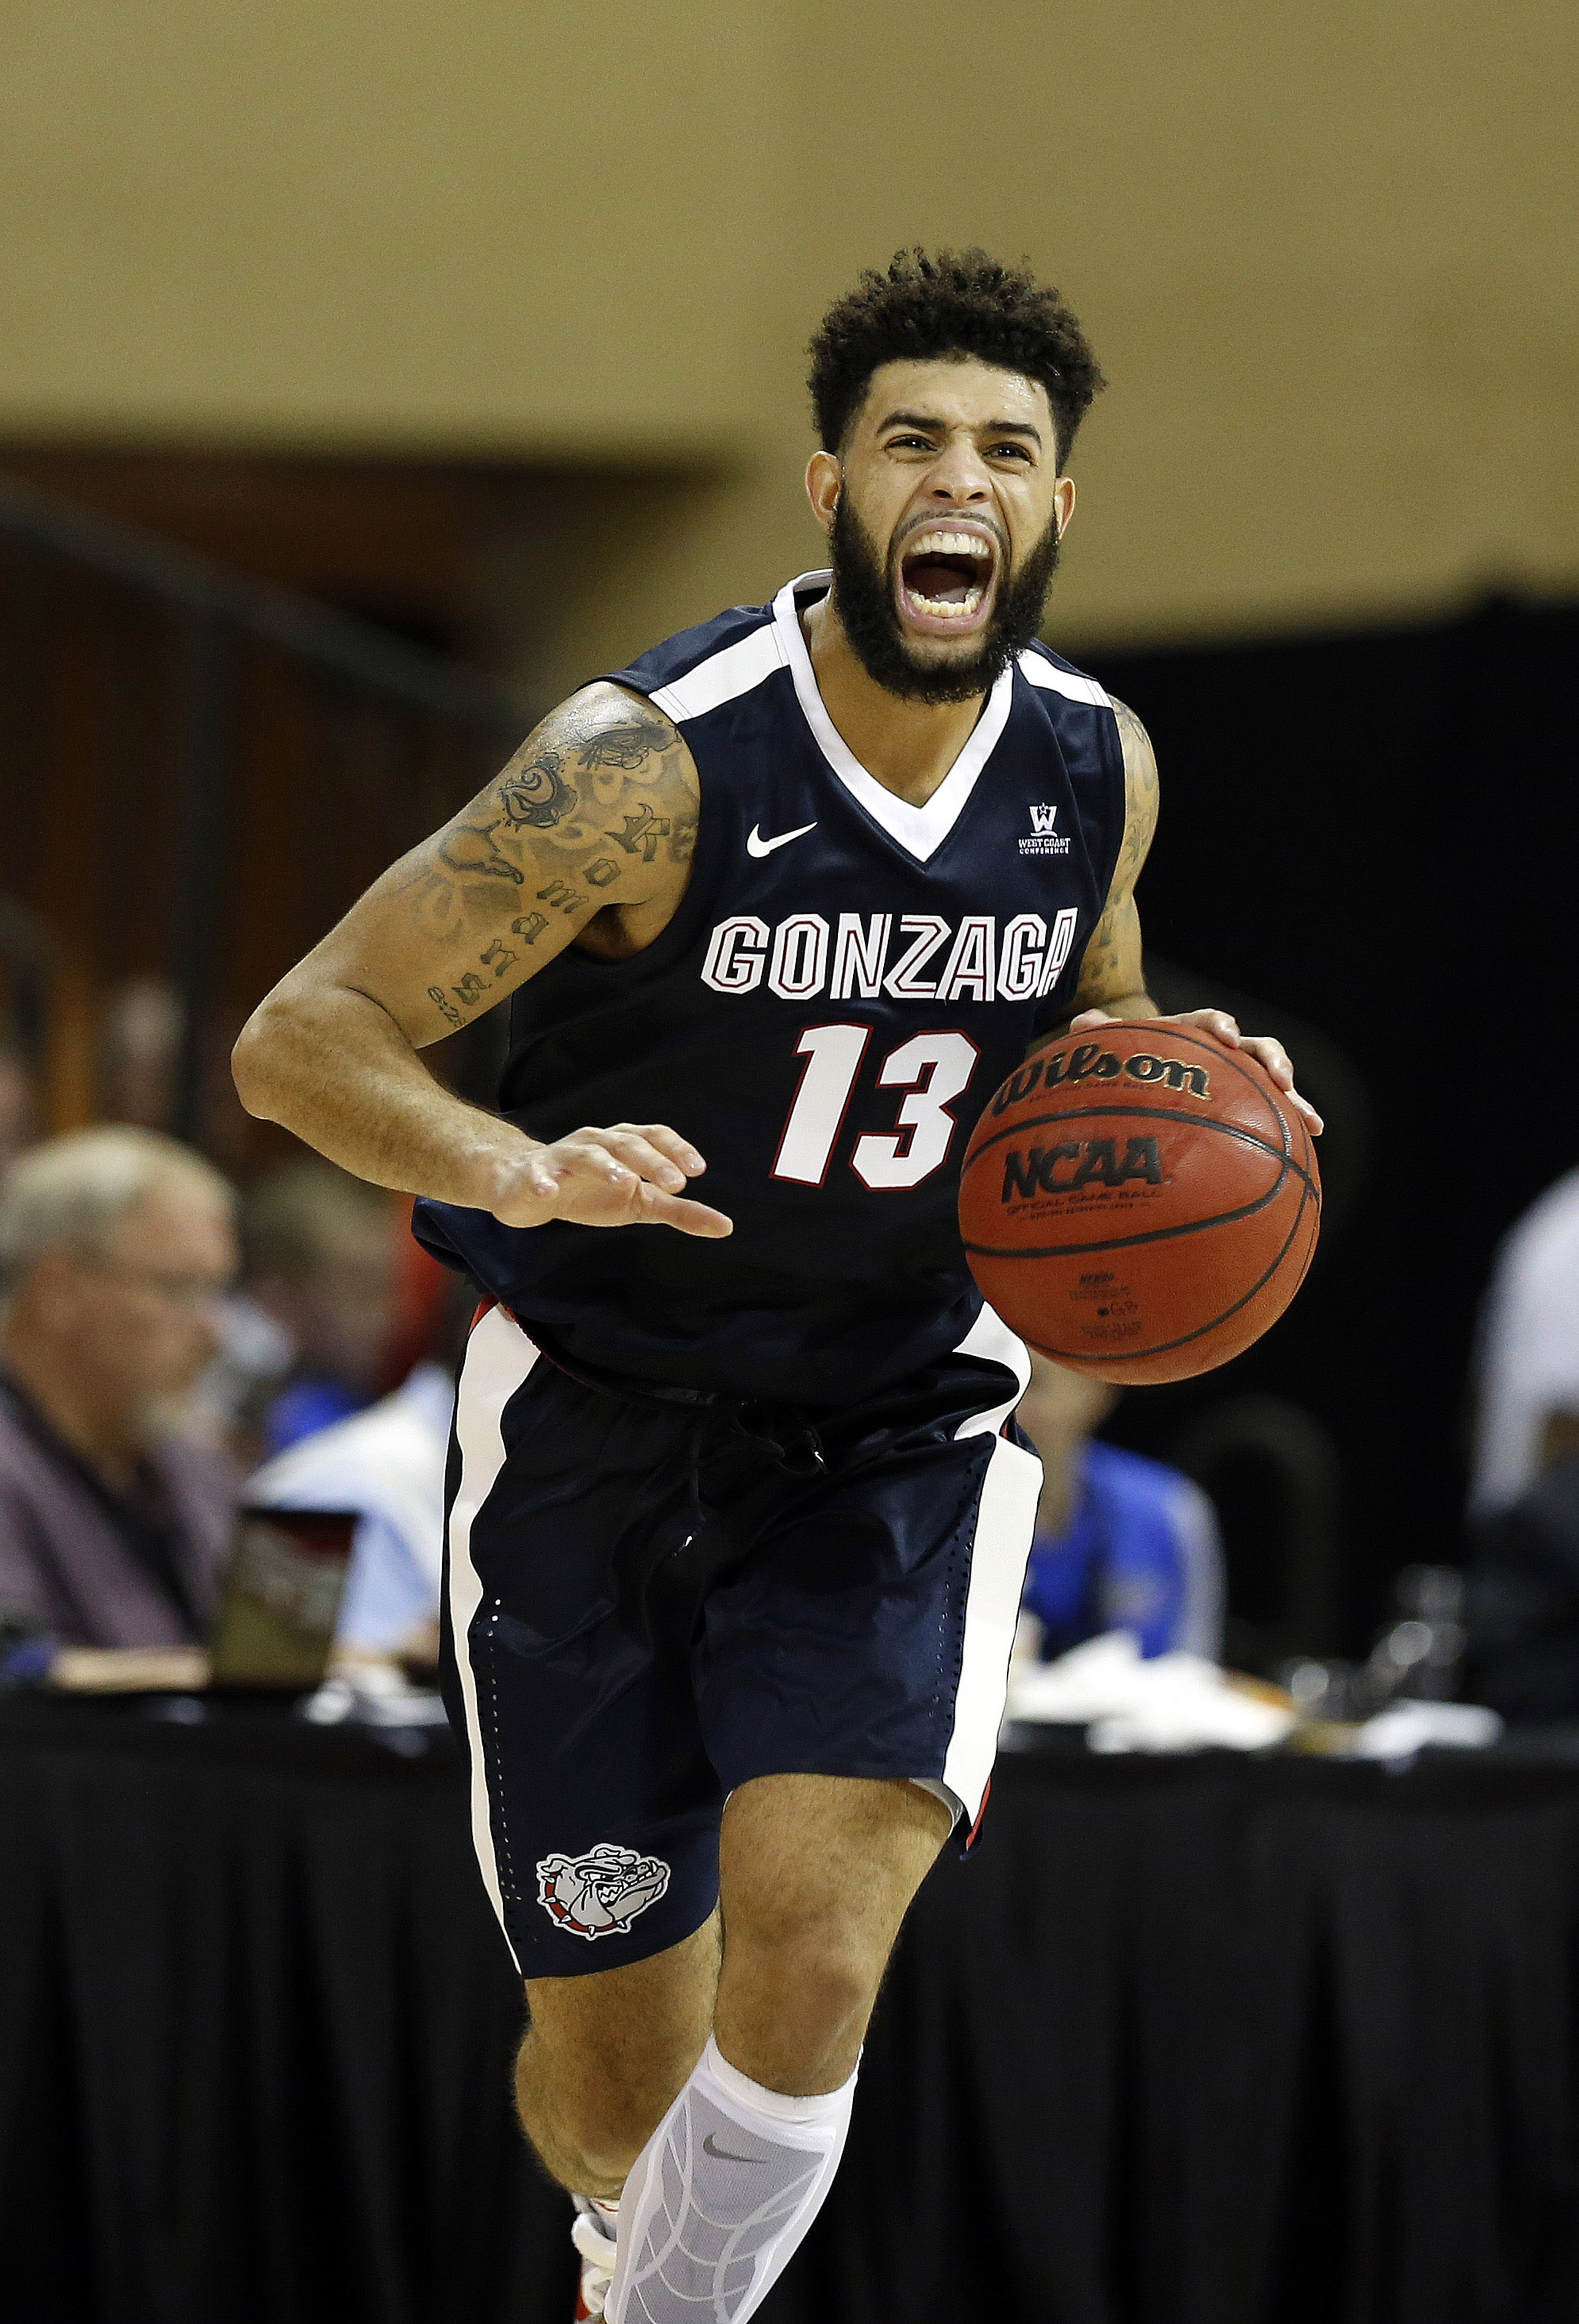 Nov 24, 2016; Kissimmee, FL, USA; Gonzaga Bulldogs guard Josh Perkins (13) drives to the basket against the Quinnipiac Bobcats during the second half at HP Field House. Gonzaga Bulldogs defeated the Quinnipiac Bobcats 82-62. Mandatory Credit: Kim Klement-USA TODAY Sports